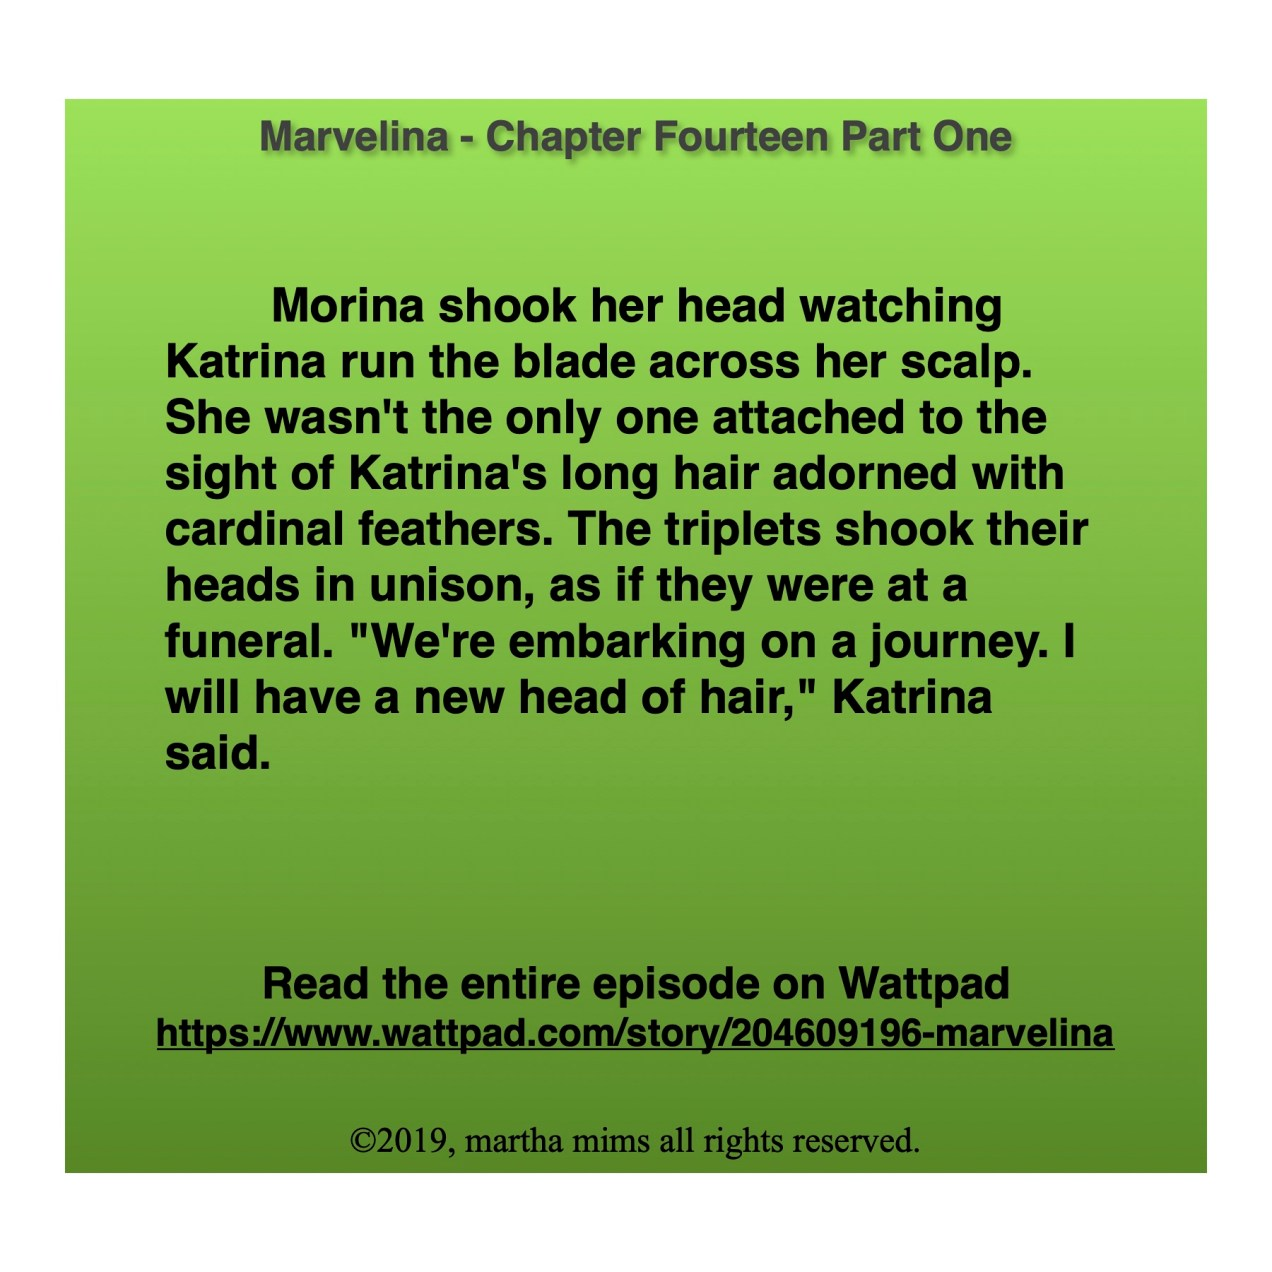 """Morina shook her head watching Katrina run the blade across her scalp. She wasn't the only one attached to the sight of Katrina's long hair adorned with cardinal feathers. The triplets shook their heads in unison, as if they were at a funeral. """"We're embarking on a journey. I will have a new head of hair,"""" Katrina said."""